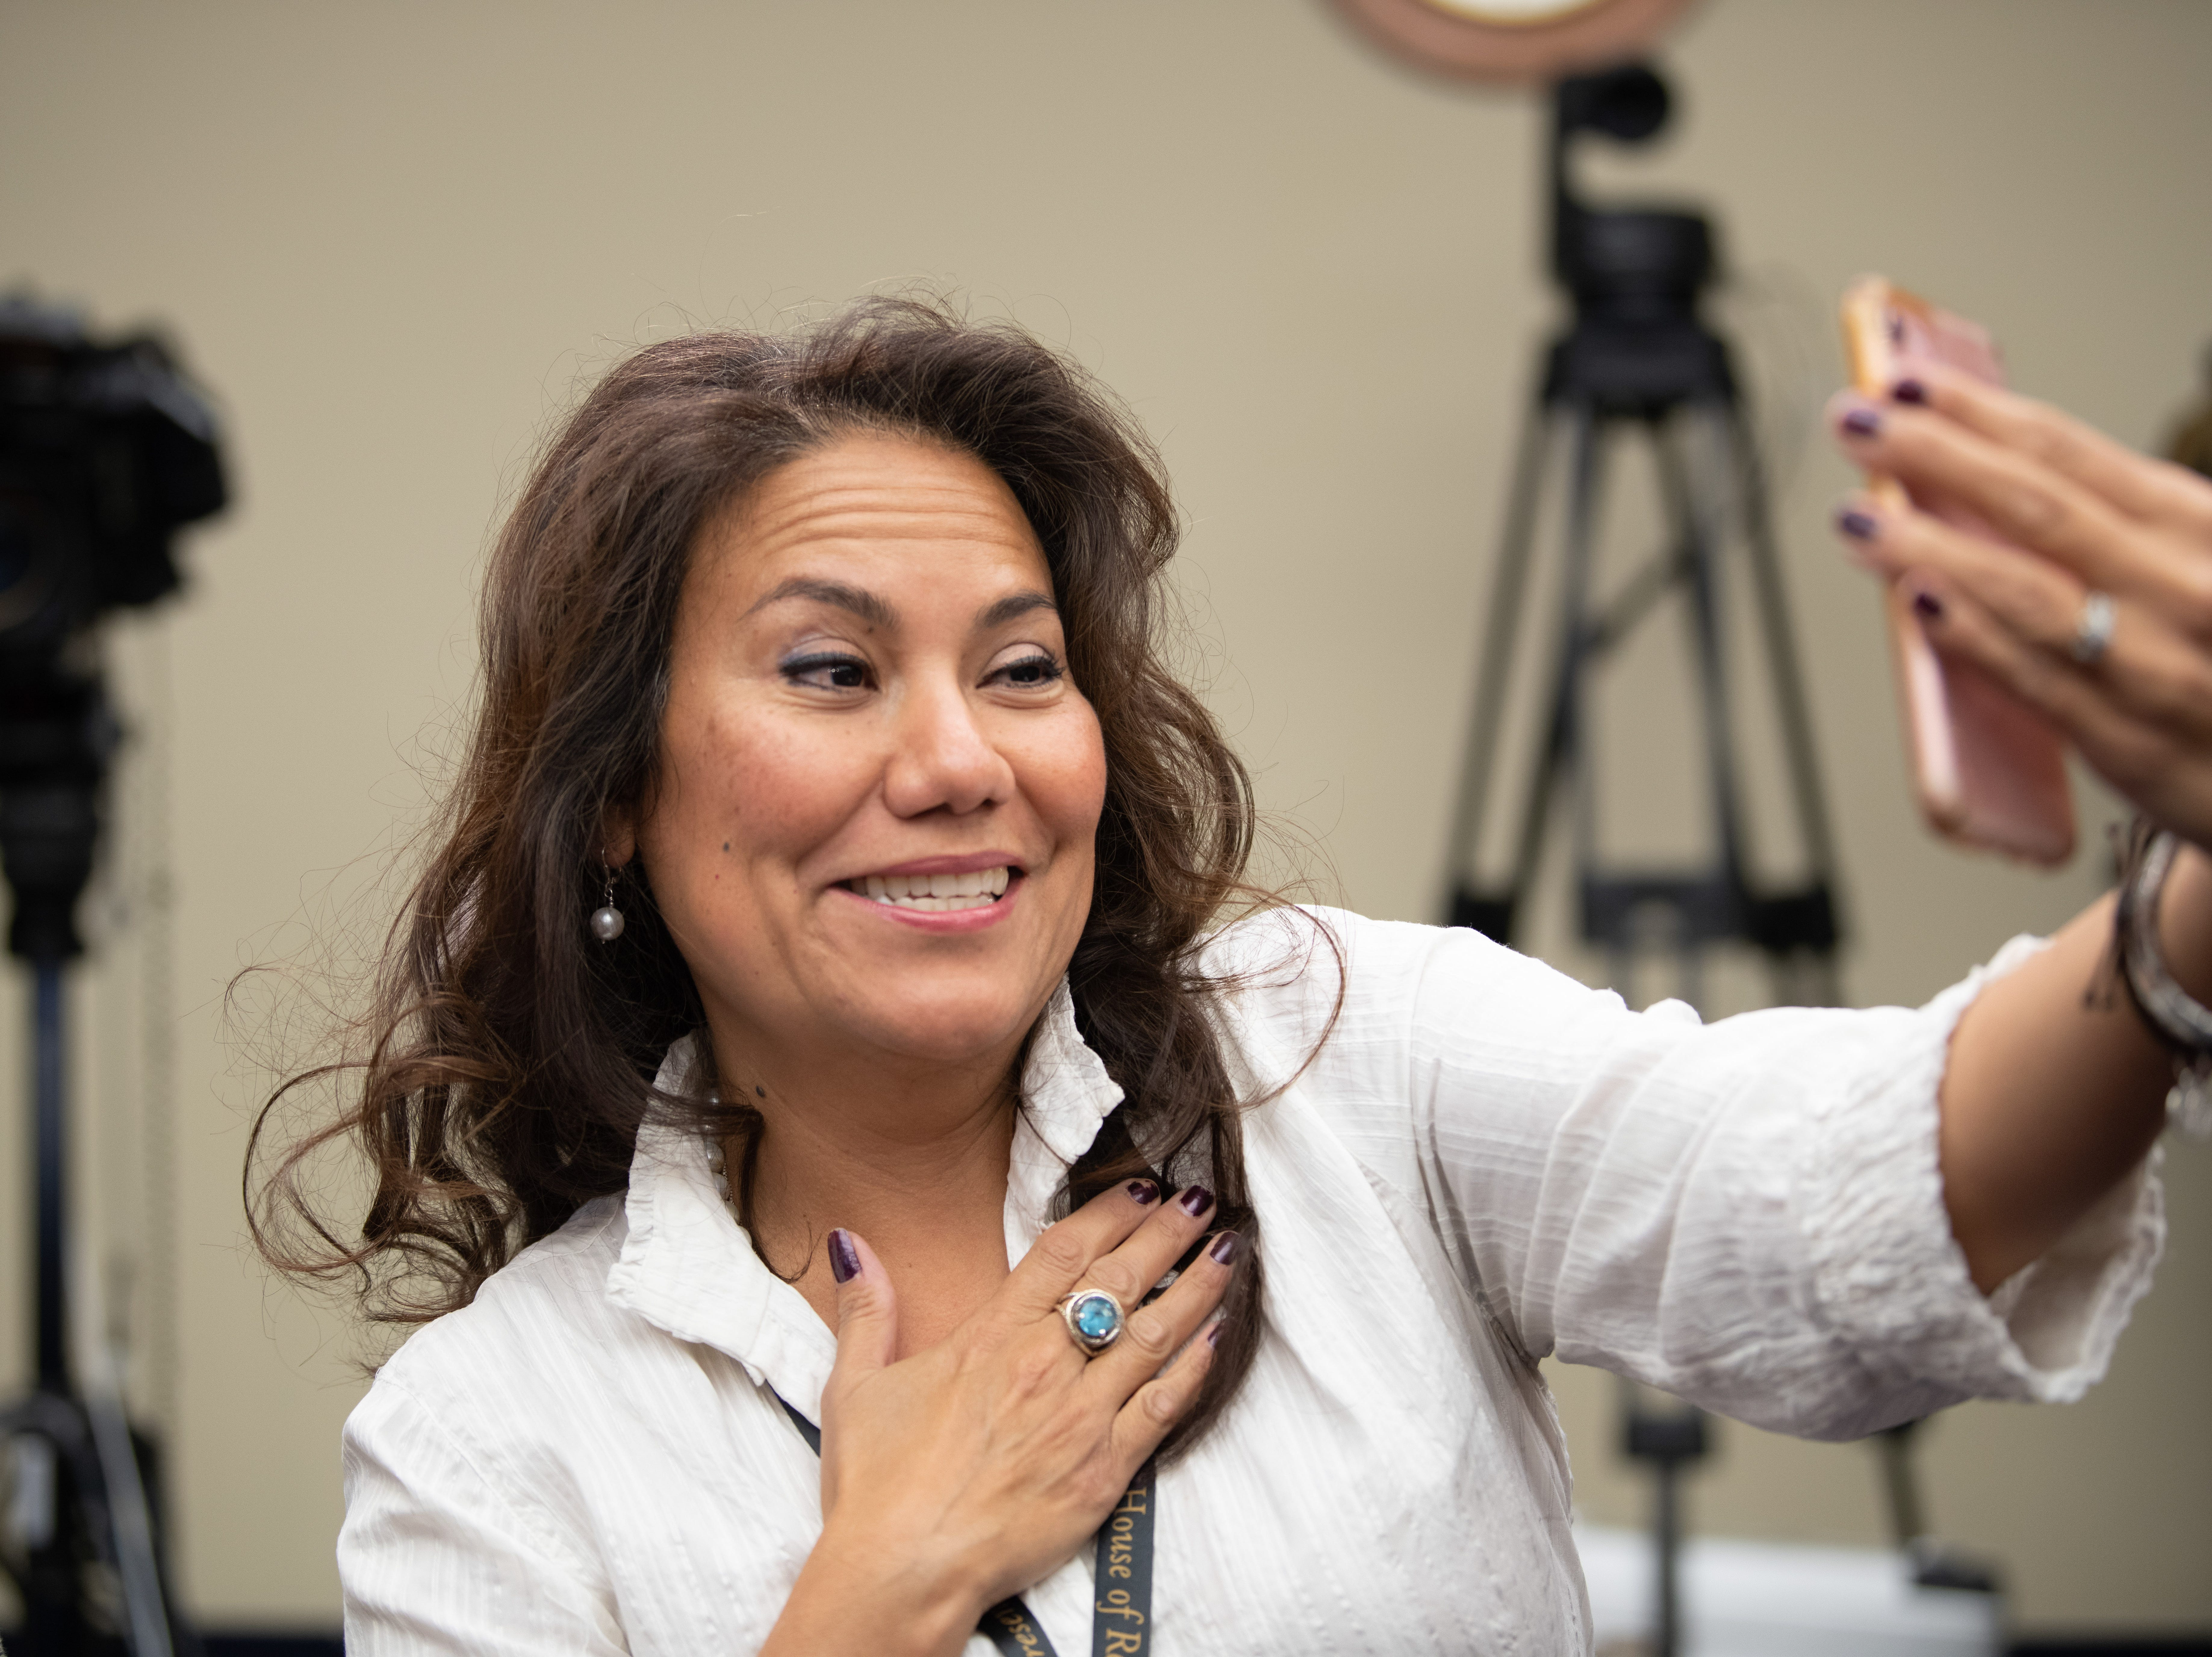 {Nov. 30, 2018} {10:30 a.m.} -- Washington, DC  -- Incoming Congresswoman Veronica Escobar of Texas (D) takes some selfies and videos before the lottery that determines the order in which new members of Congress will select their offices. -- Photo by Hannah Gaber, USA TODAY Staff